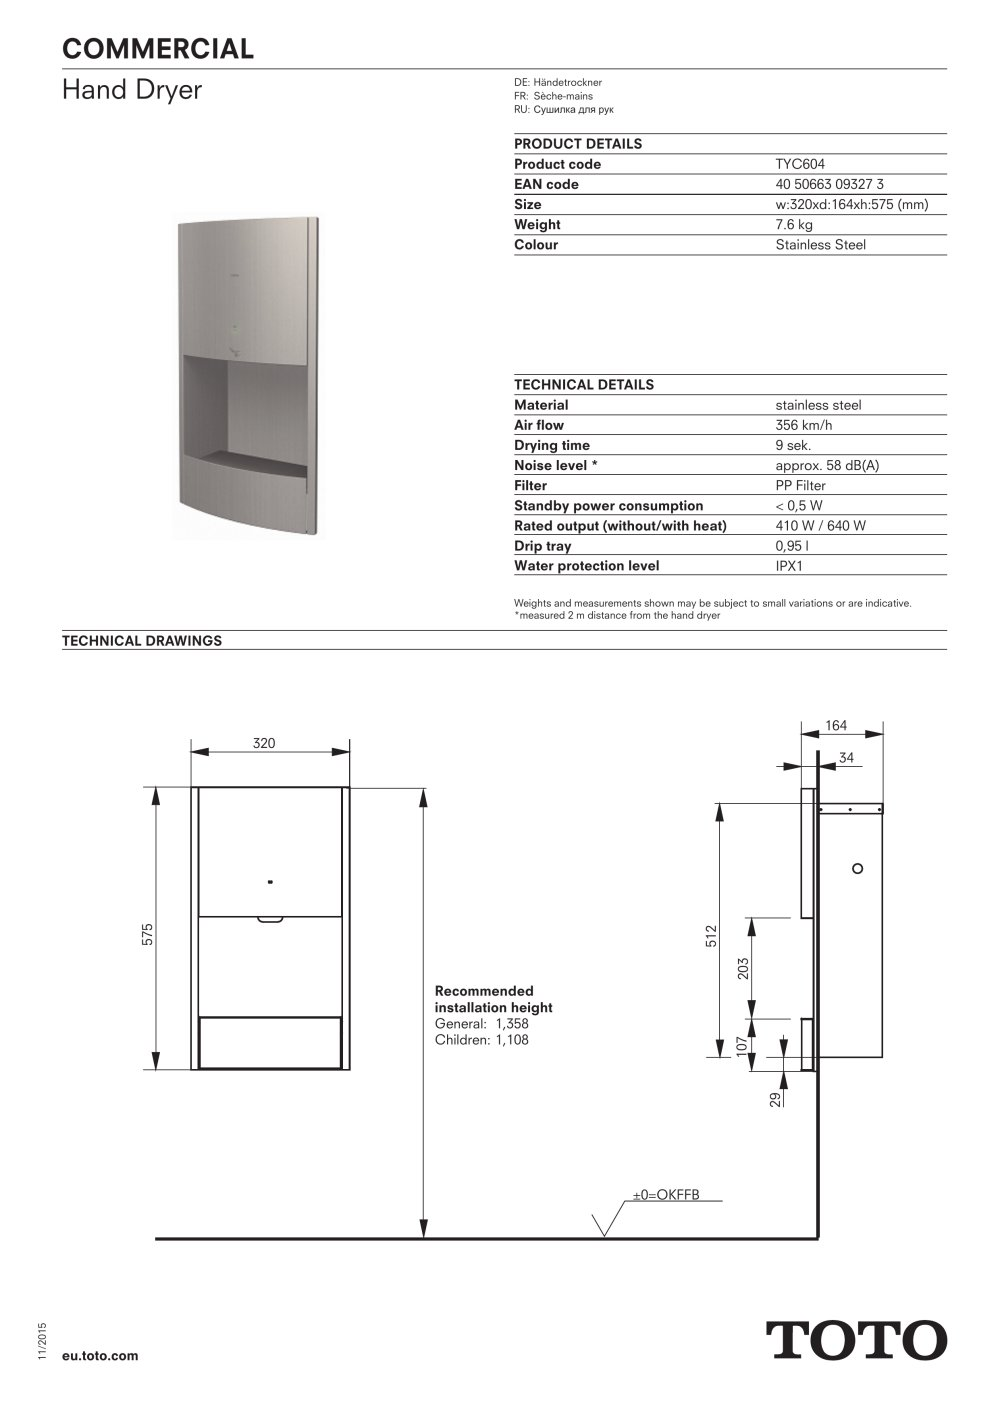 Toto Commercial Händetrockner Hand Dryer Toto Europe Gmbh Pdf Catalogs Documentation